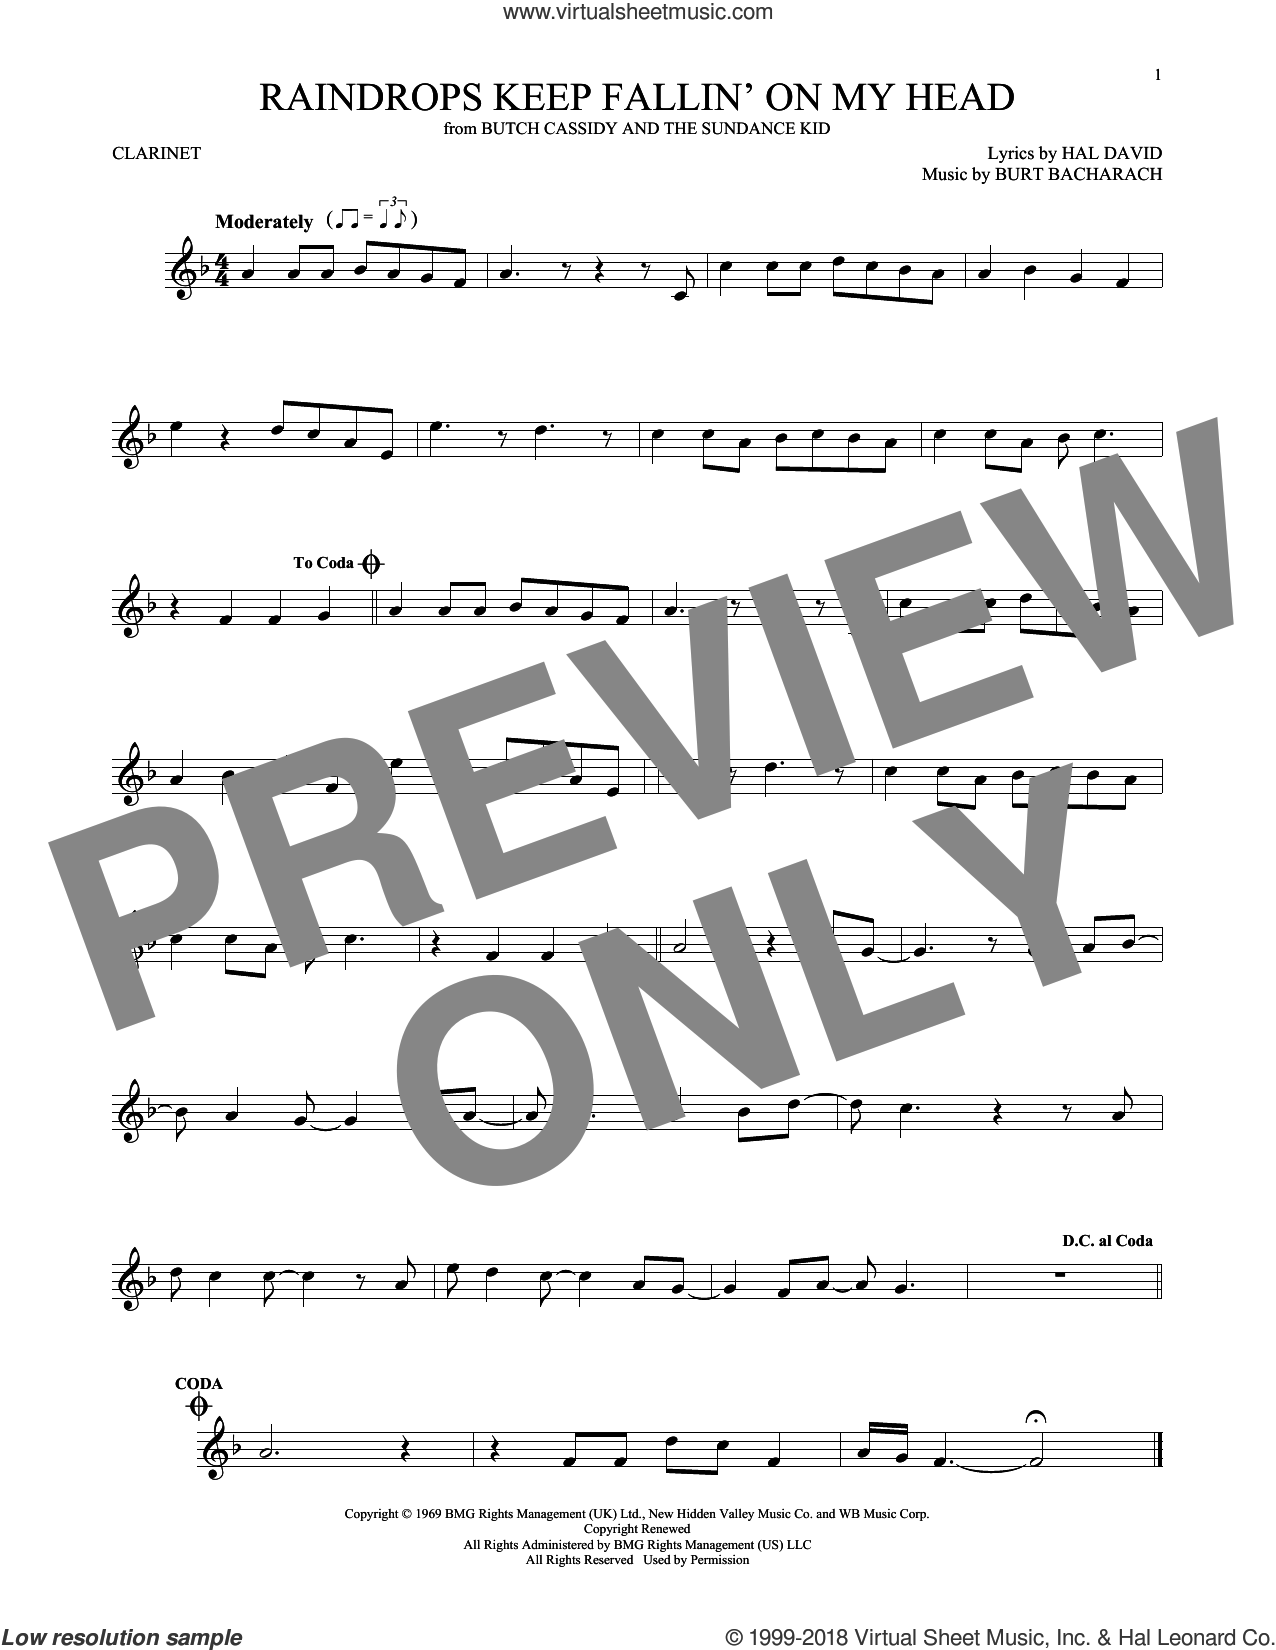 Raindrops Keep Fallin' On My Head sheet music for clarinet solo by Burt Bacharach, B.J. Thomas and Hal David, intermediate skill level